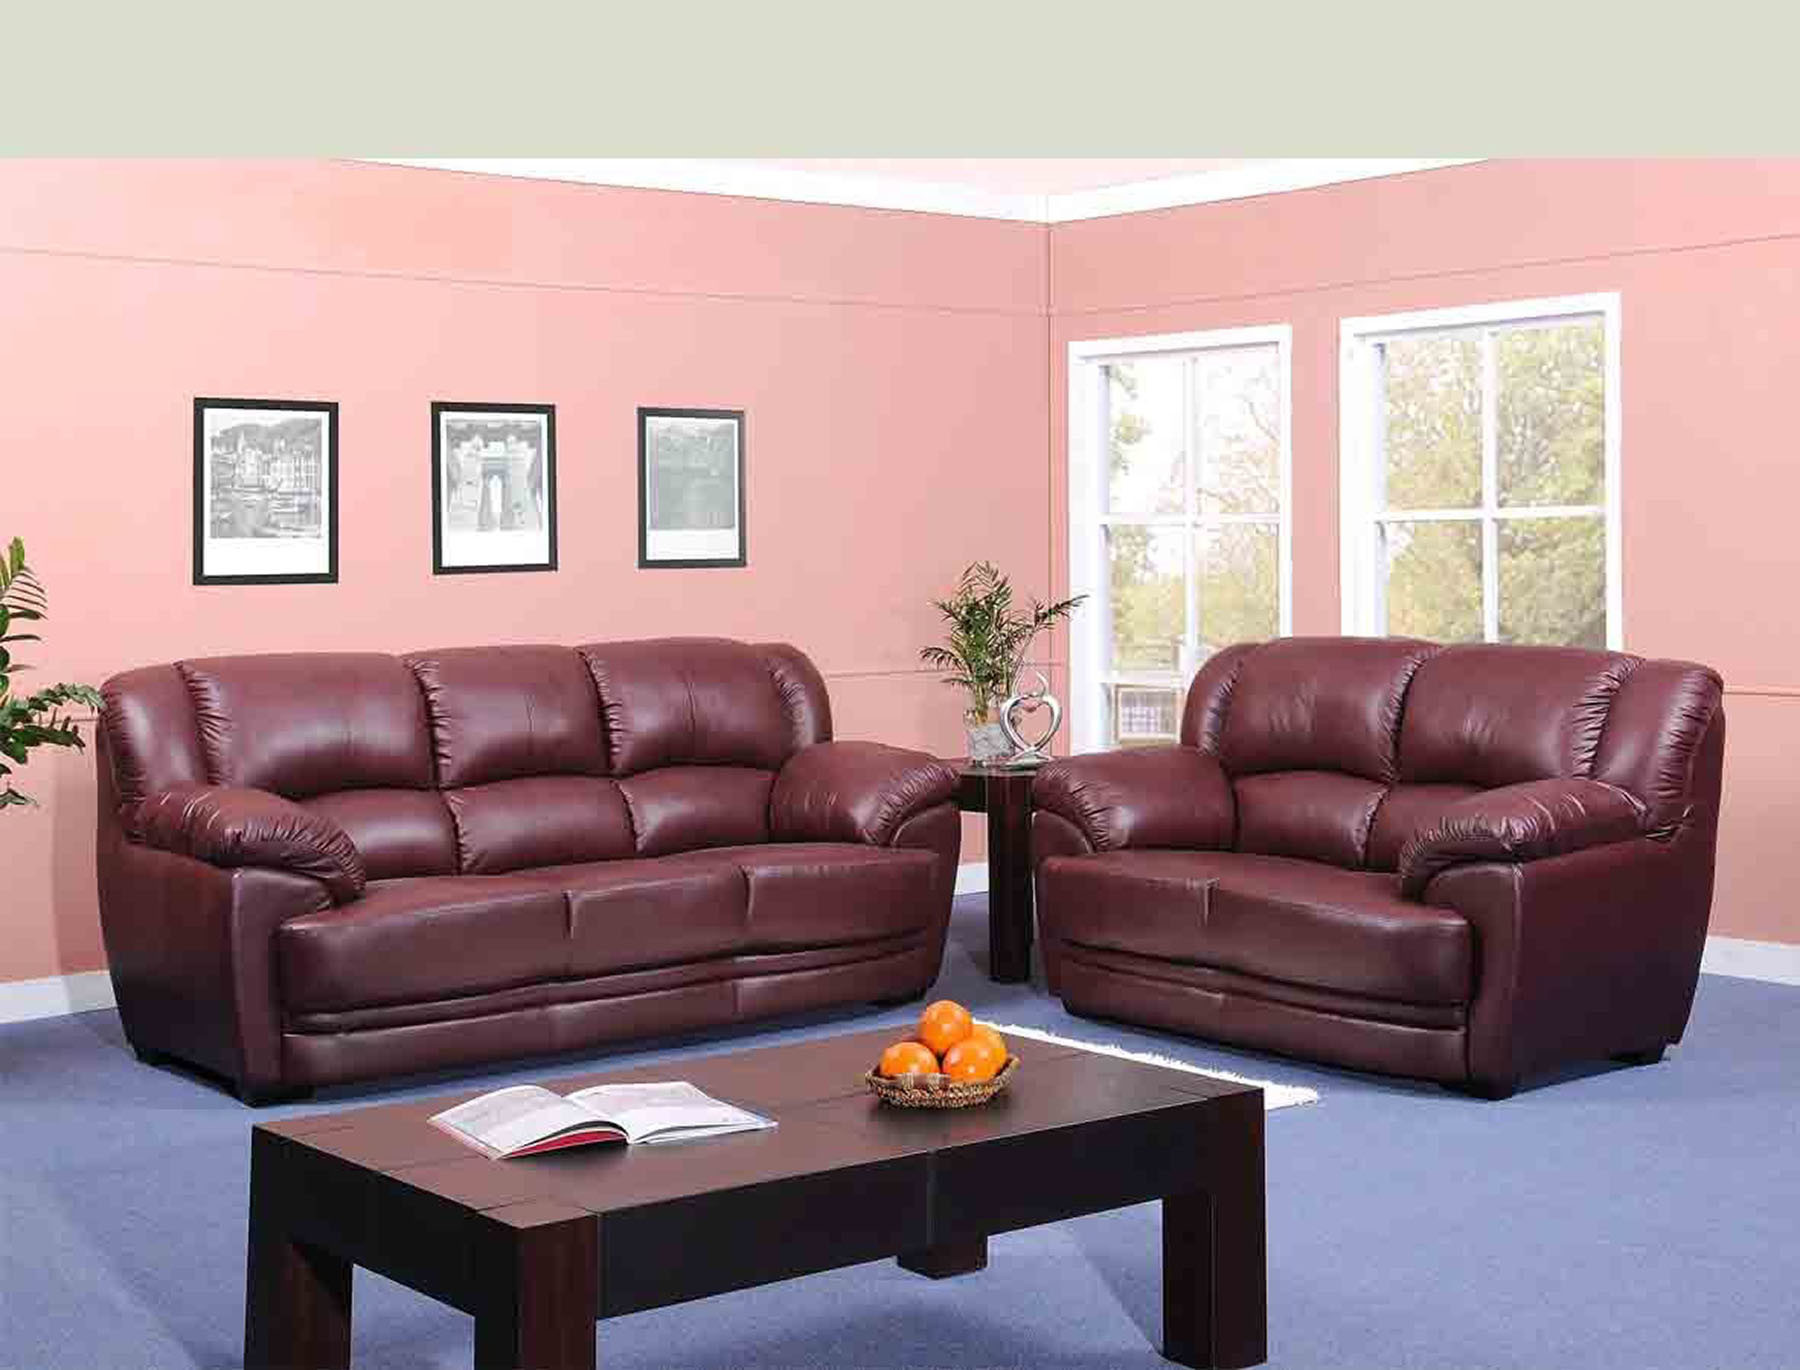 Swell Hot Item Comfortable Home Furnitue Leather Sofa Sets Theyellowbook Wood Chair Design Ideas Theyellowbookinfo